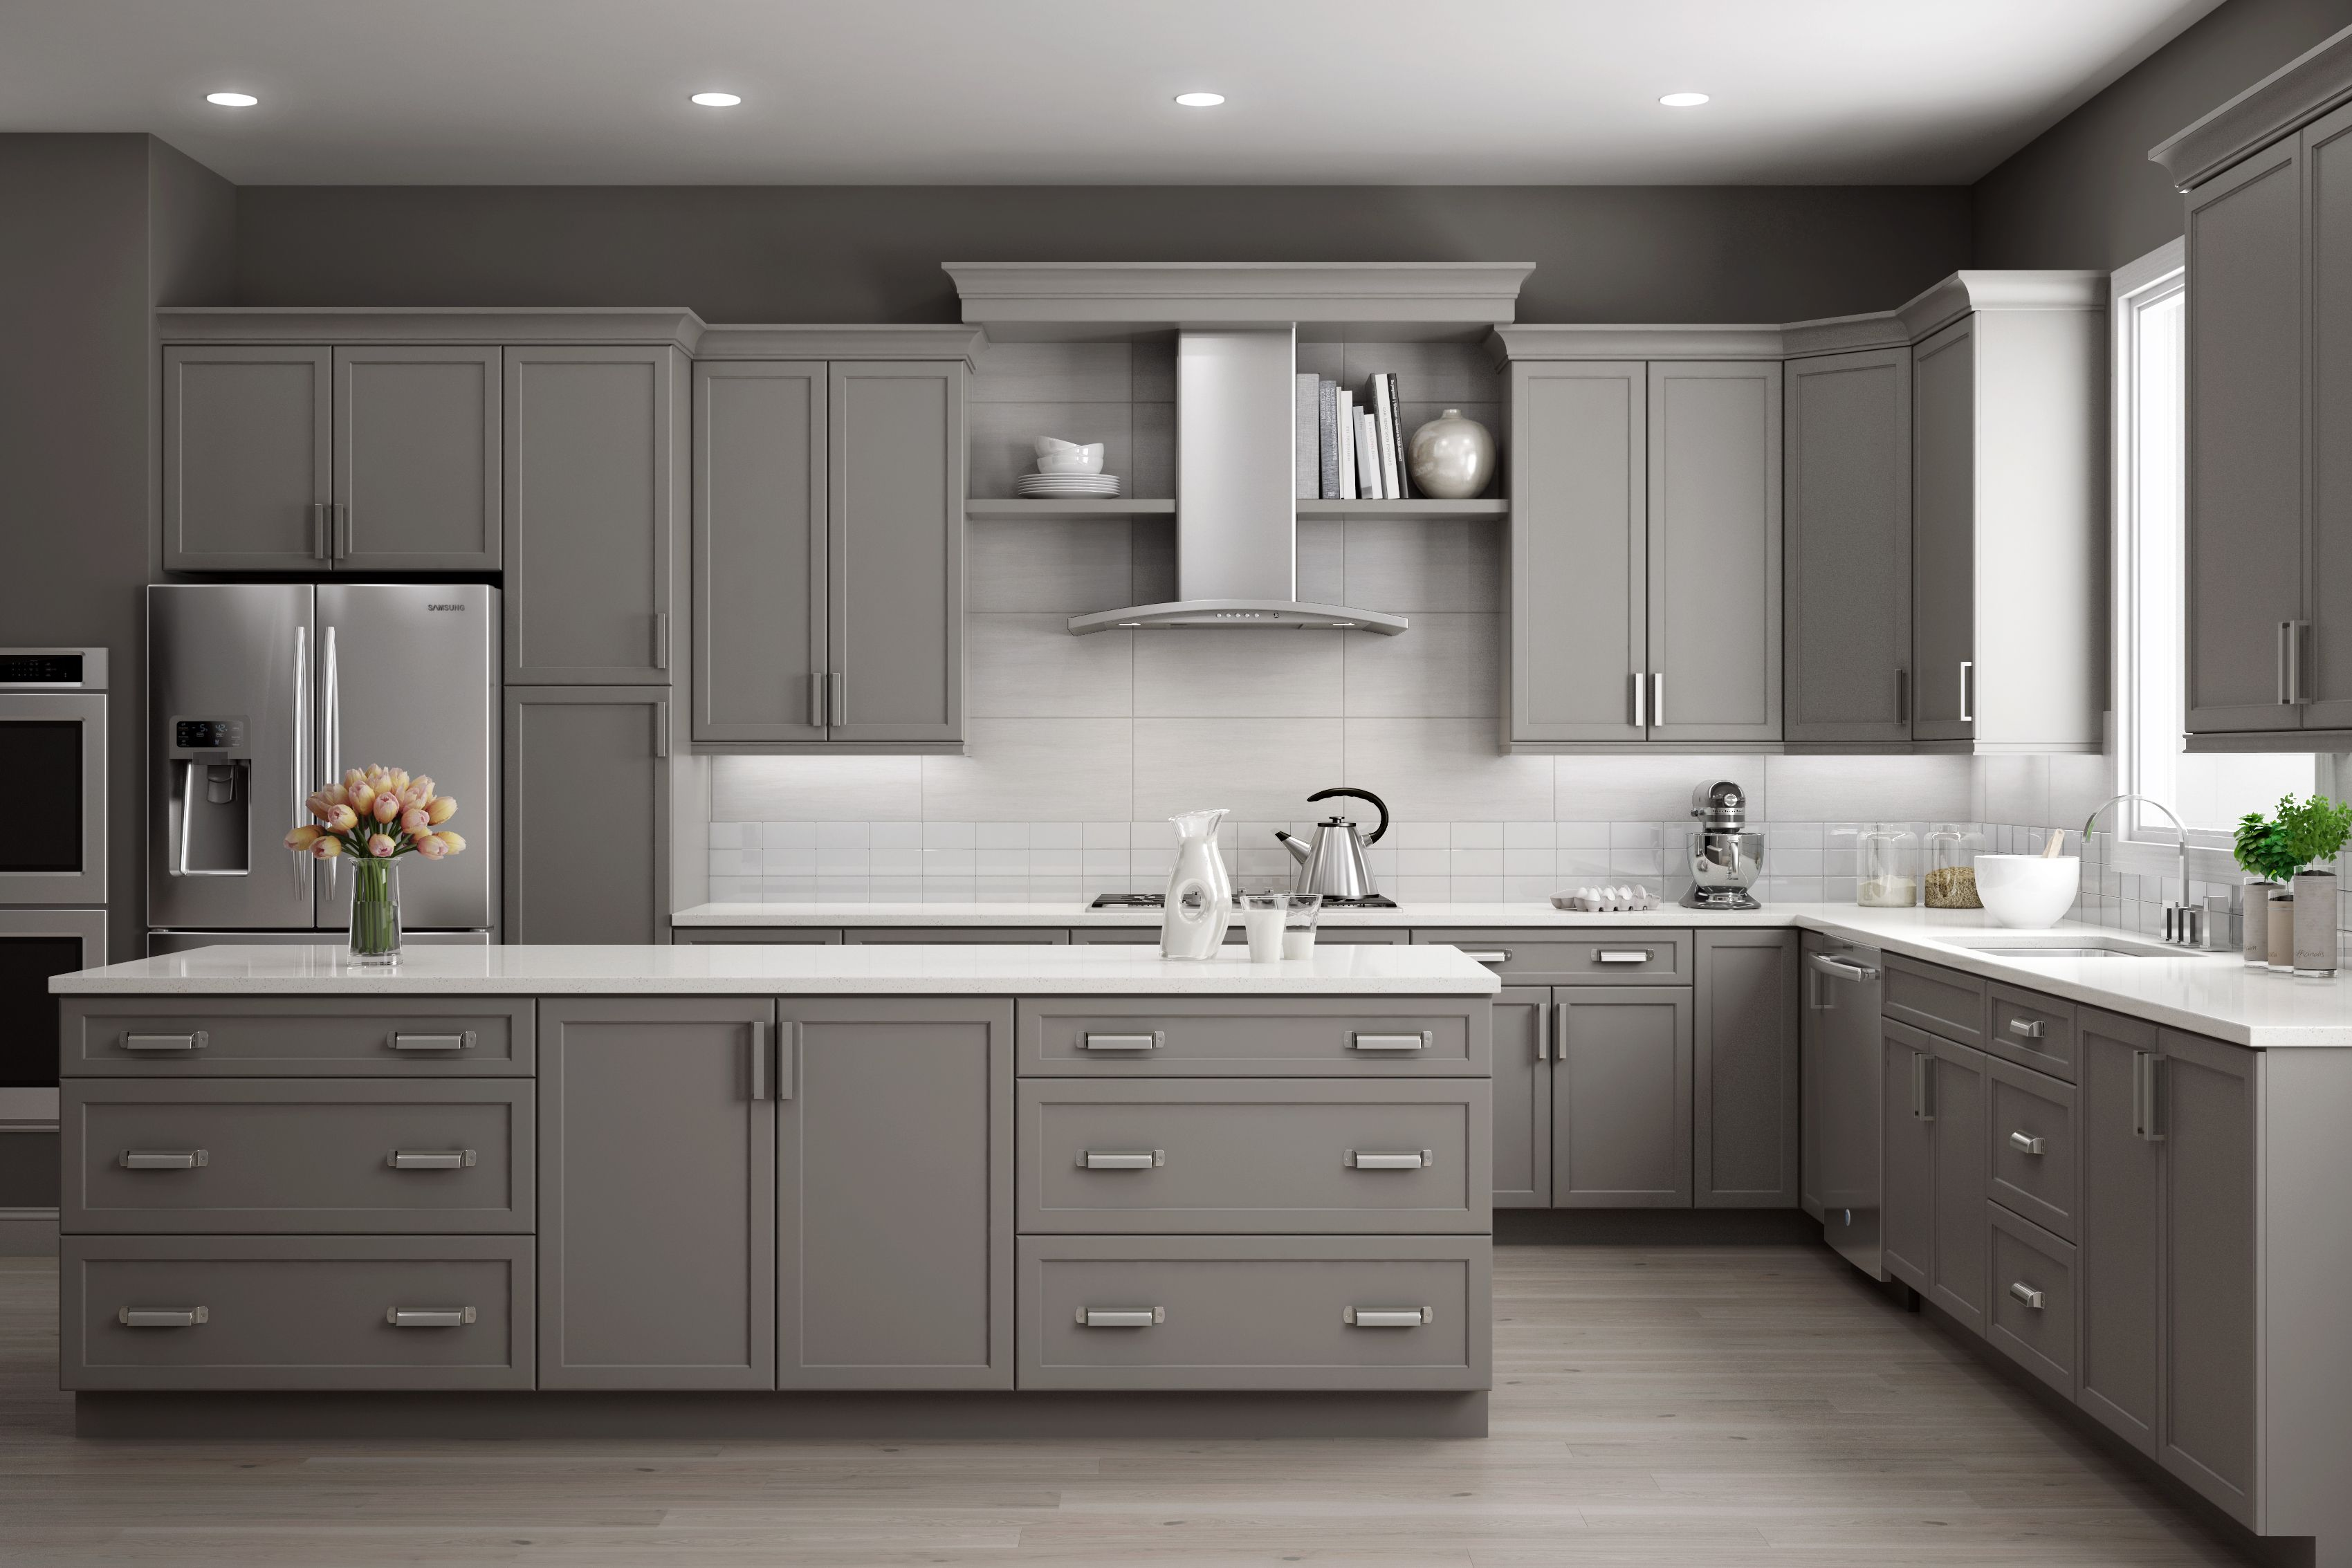 American Woodmark Pcs Professional Cabinet Solutions Designer Kitchen Cabinetry Grey Kitchen Cabinets Kitchen Cabinets Kitchen Cabinets For Sale